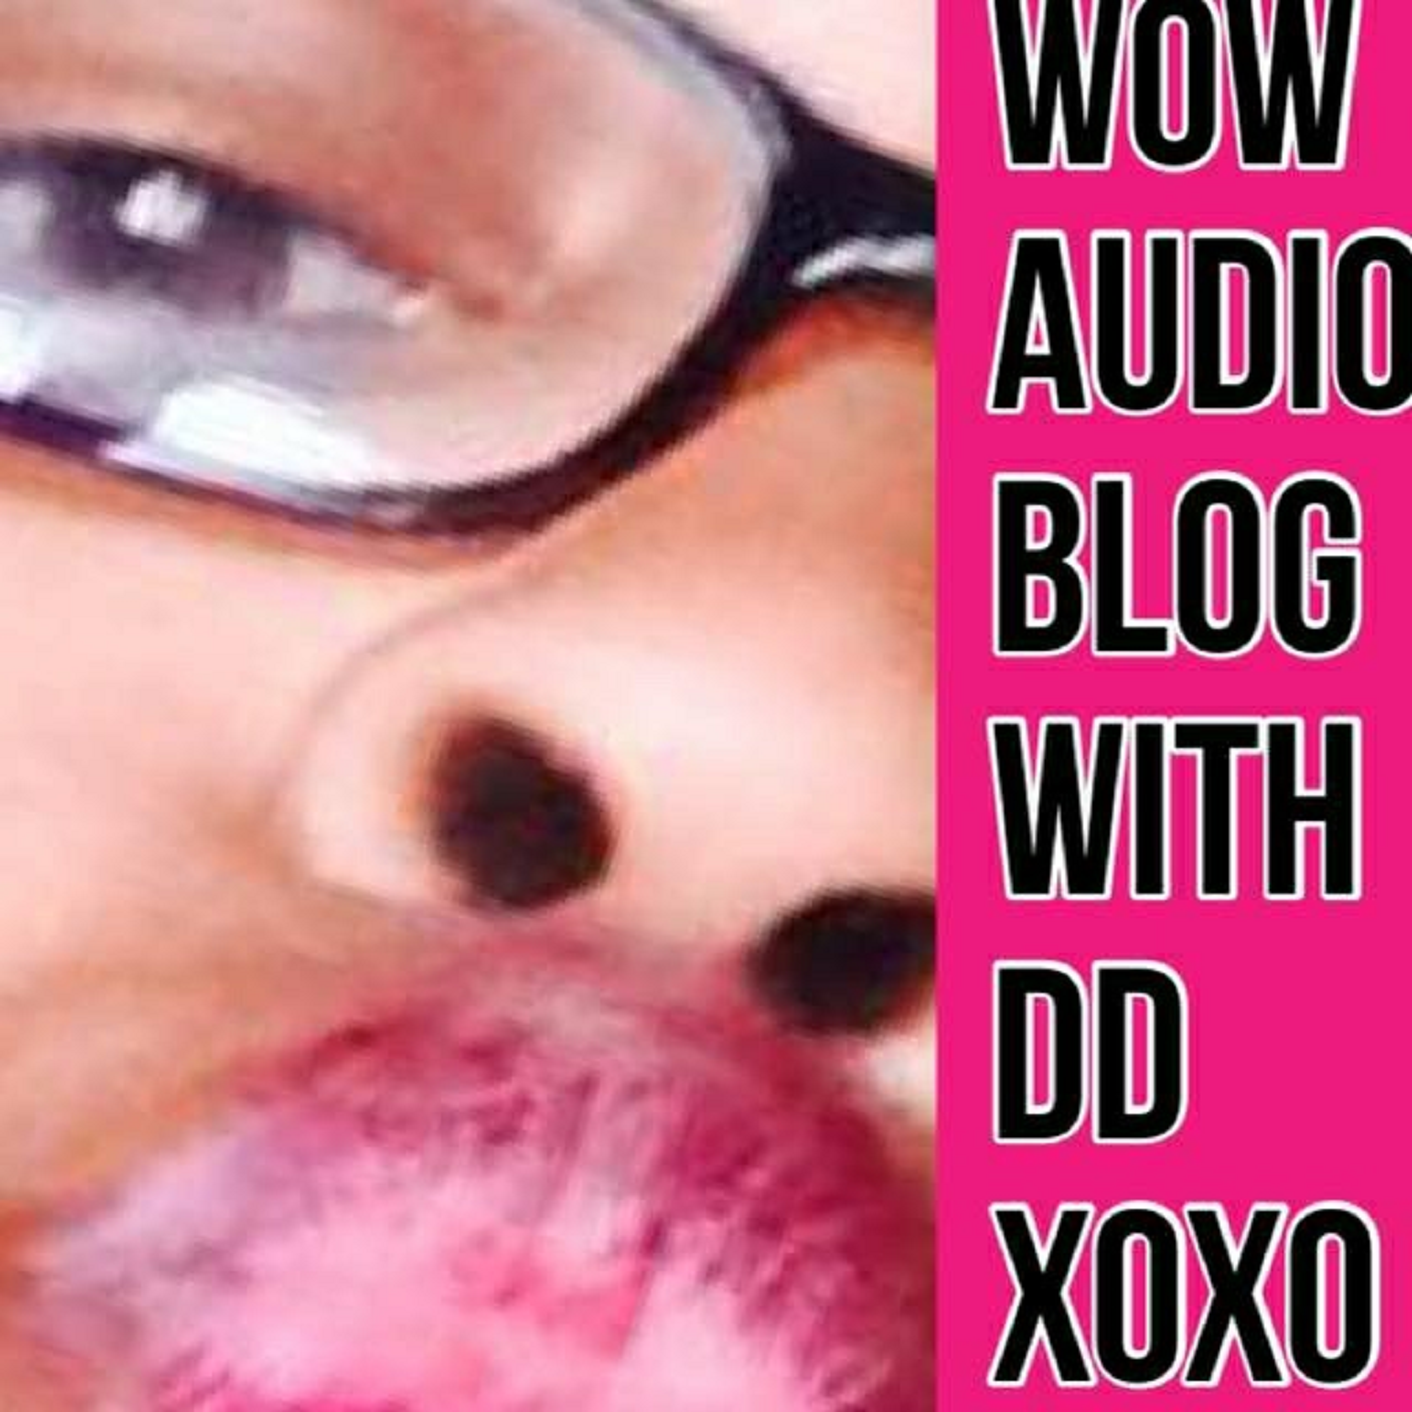 Wow Audio Blog